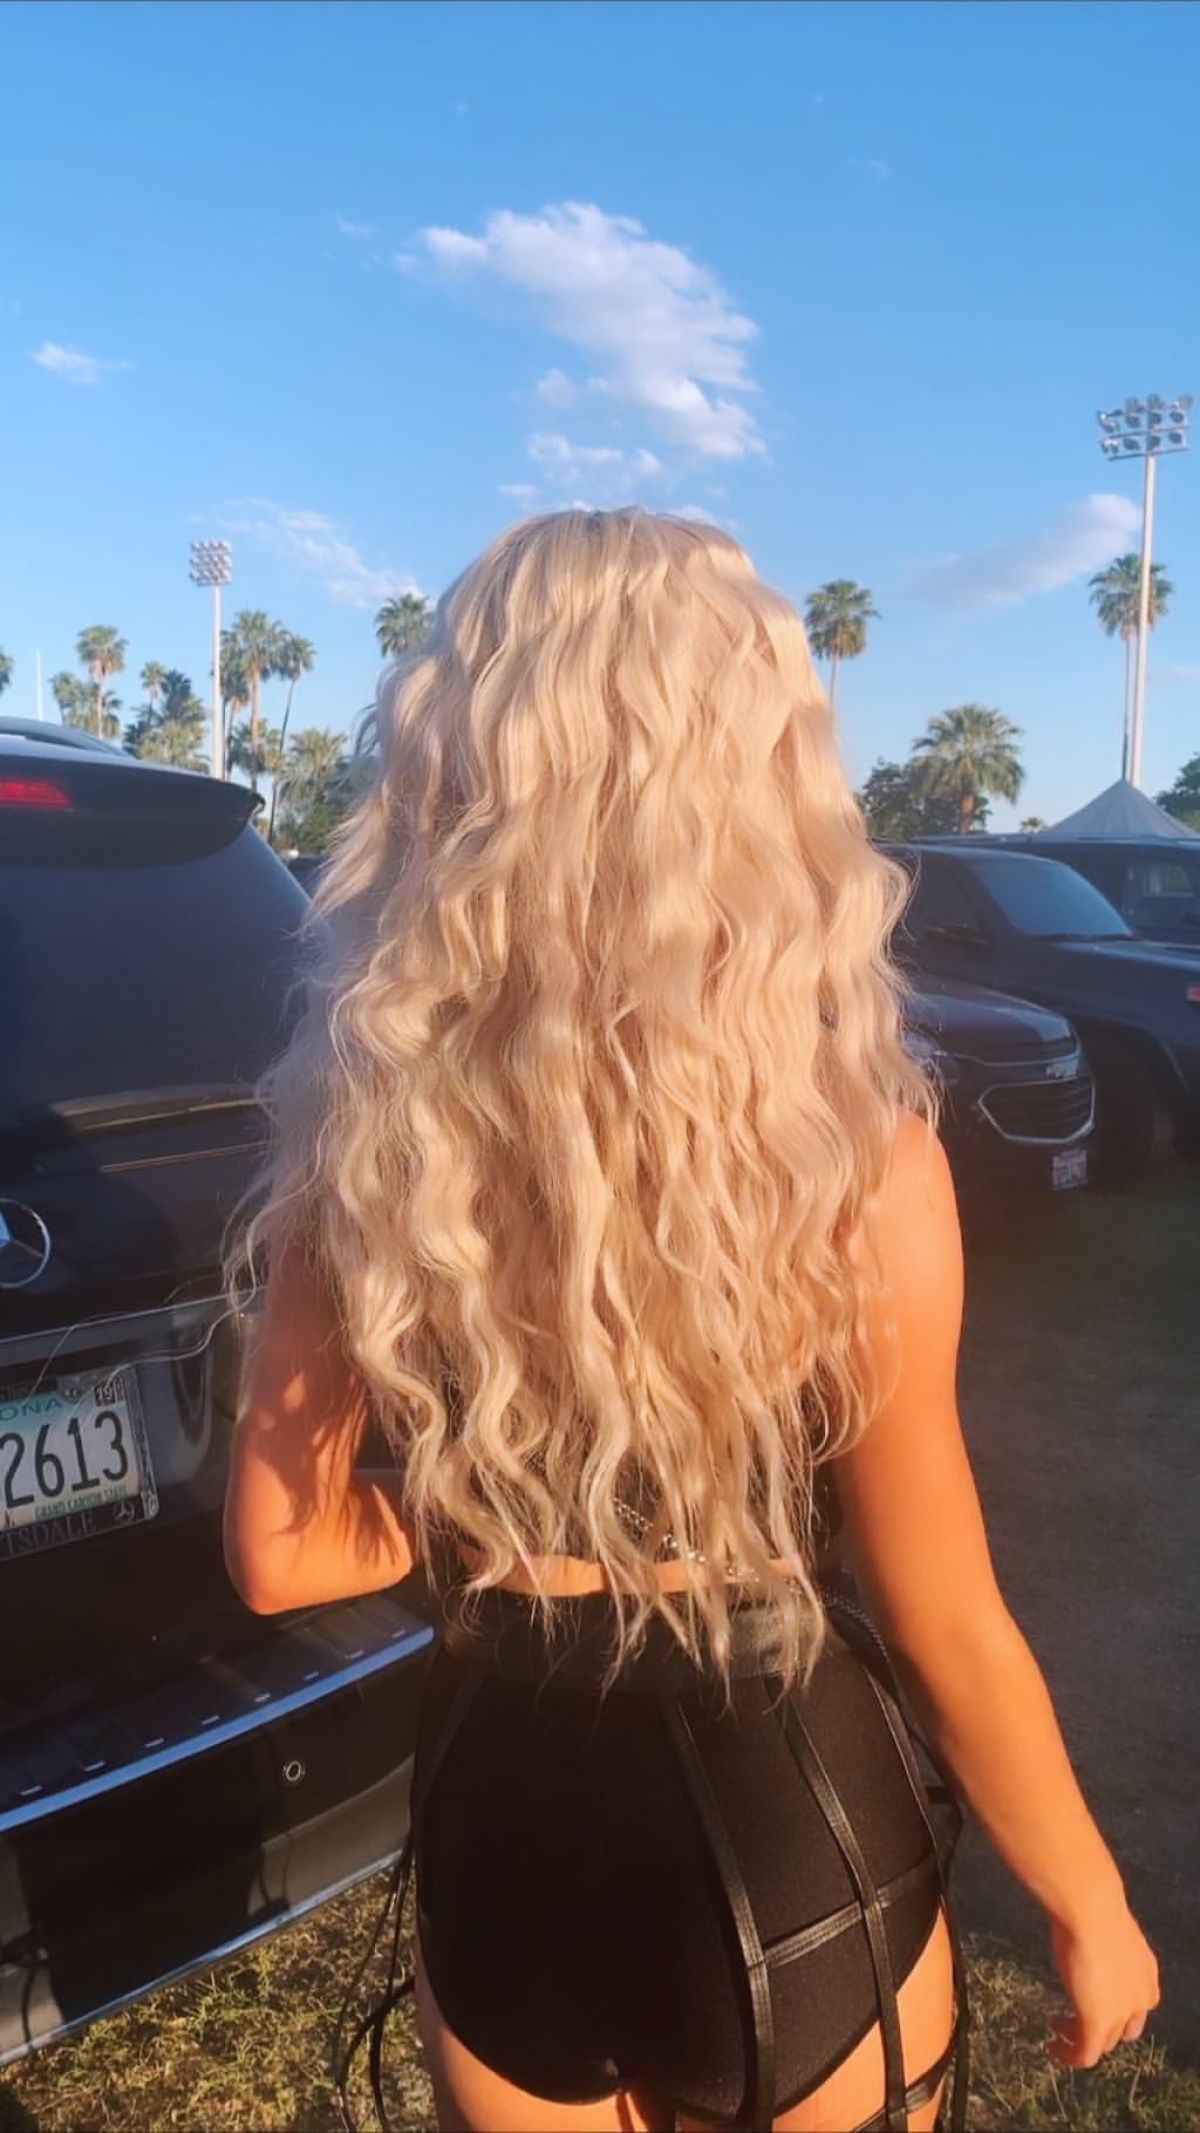 LOREN GRAY at Coachella Valley – Instagram Pictures and ...